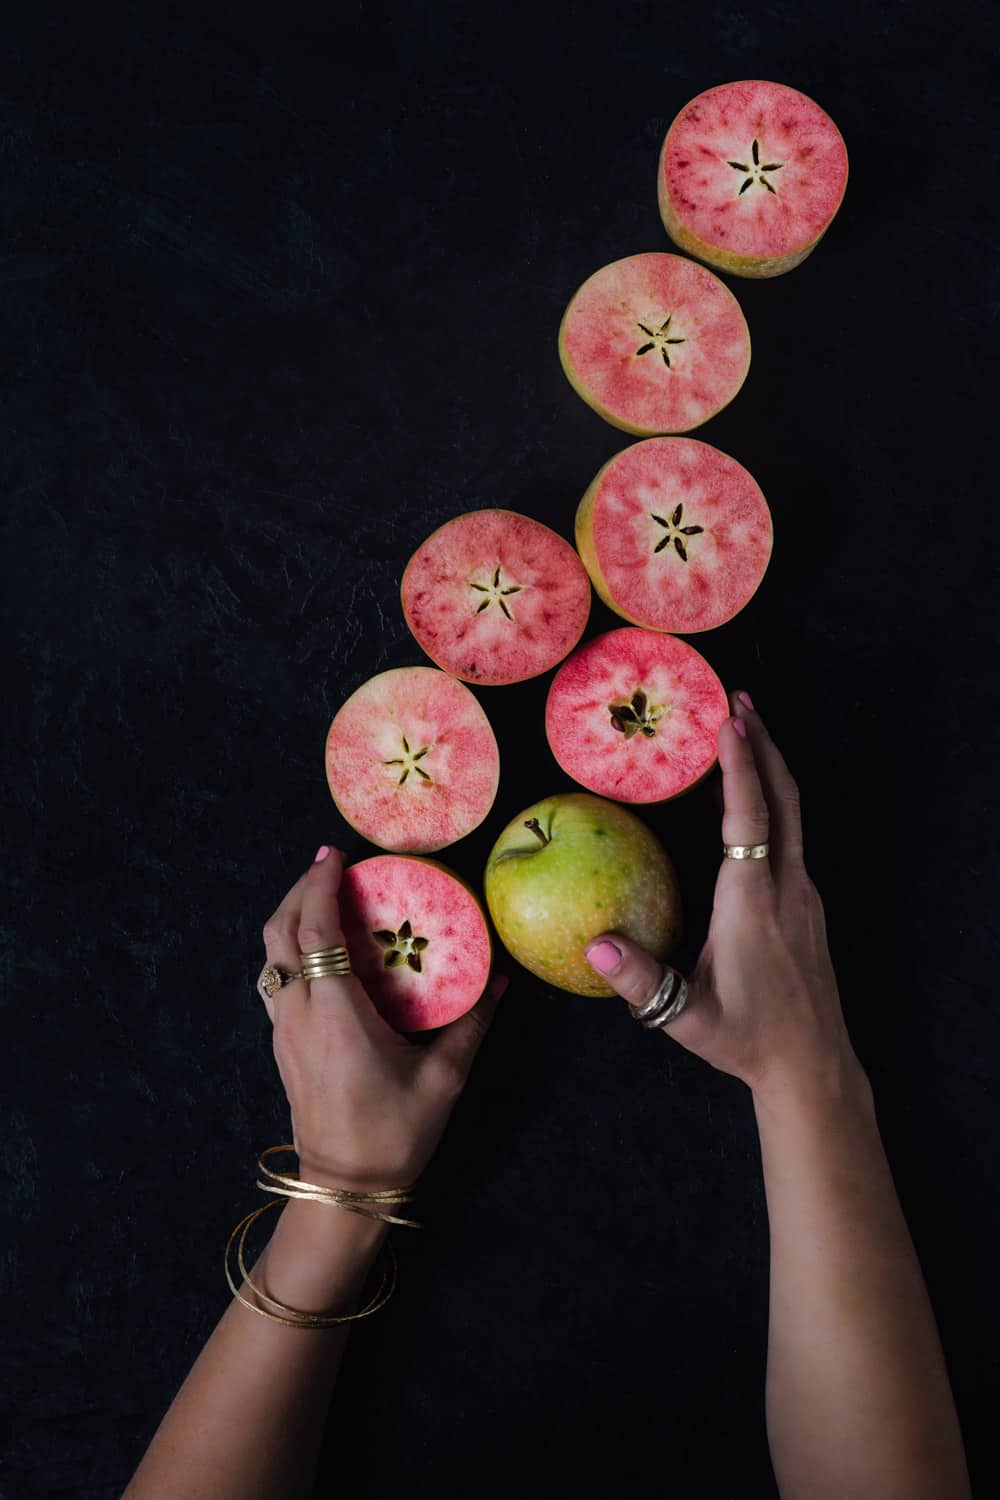 Daniela Gerson holding pink apples, overhead shot on a black background.